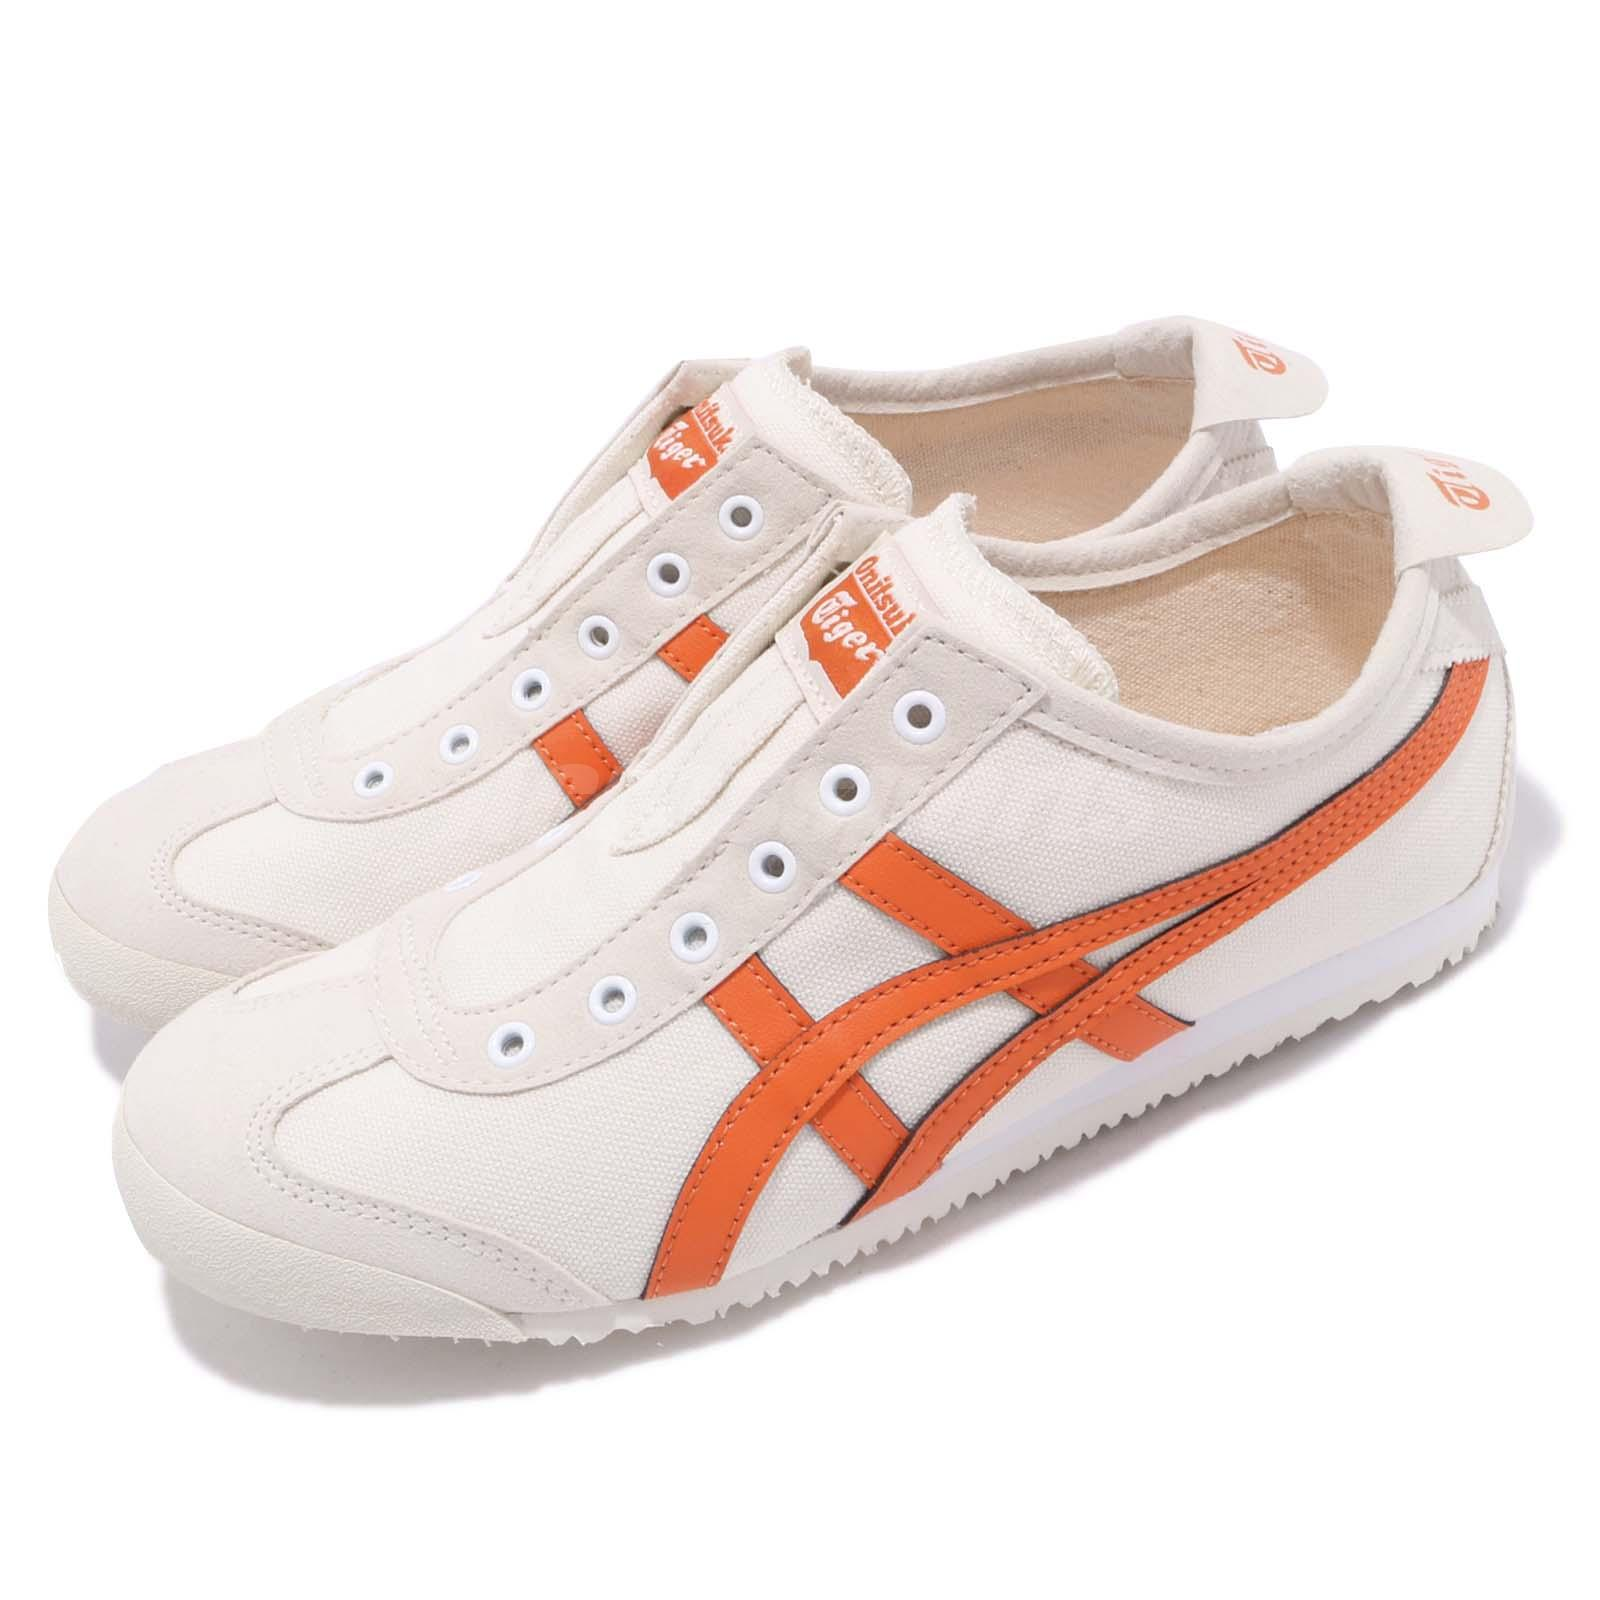 sports shoes 4d2fe 81143 Details about Asics Onithuka Tiger Mexico 66 Slip On Birch Orange Men Women  Shoes 1183A360-202